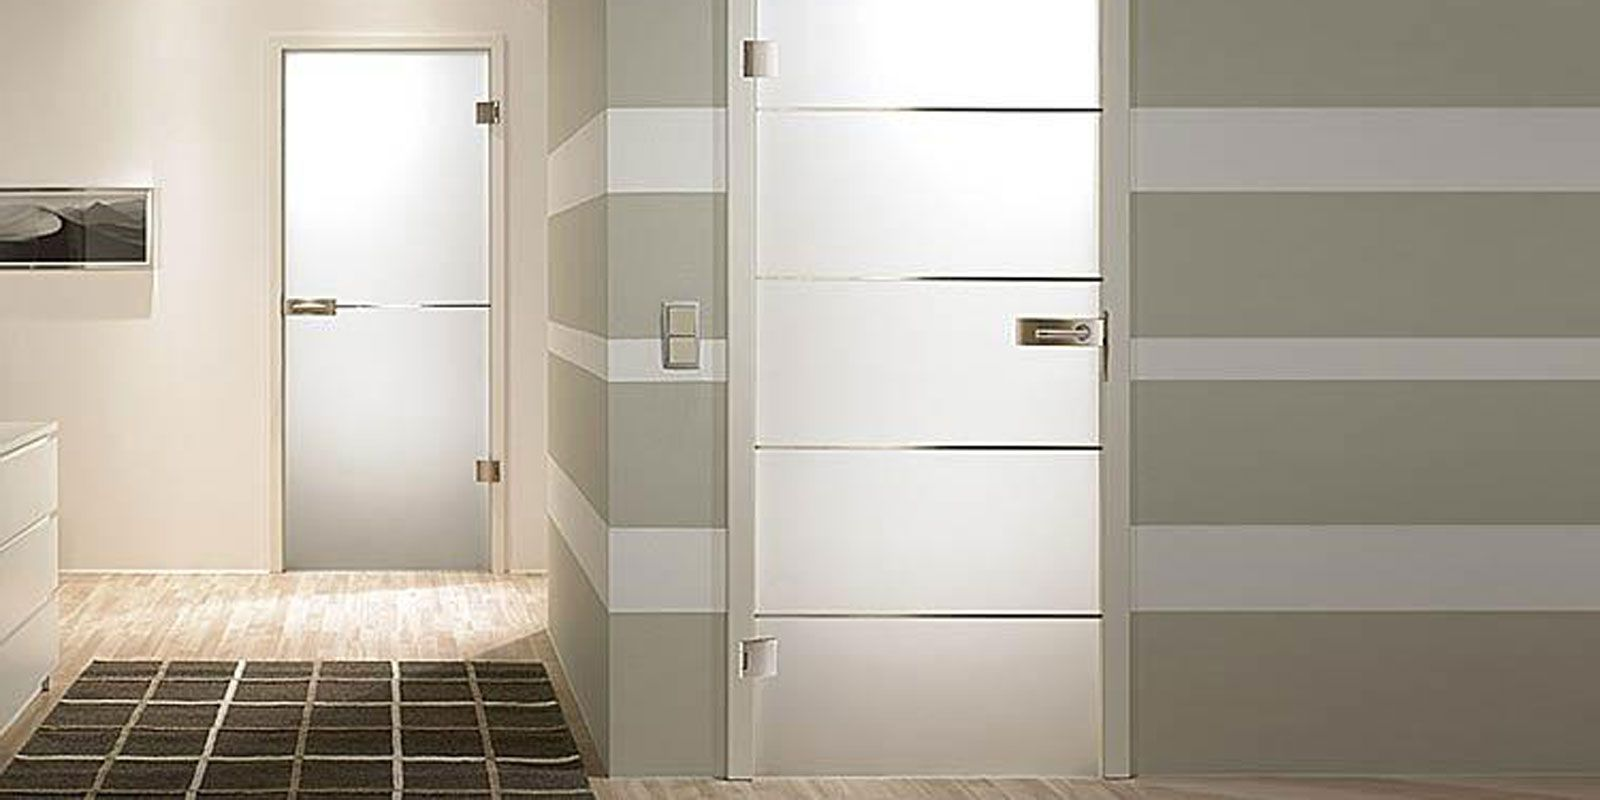 Bathroom Design Toilet Door : Modern glass door in bathroom and toilet